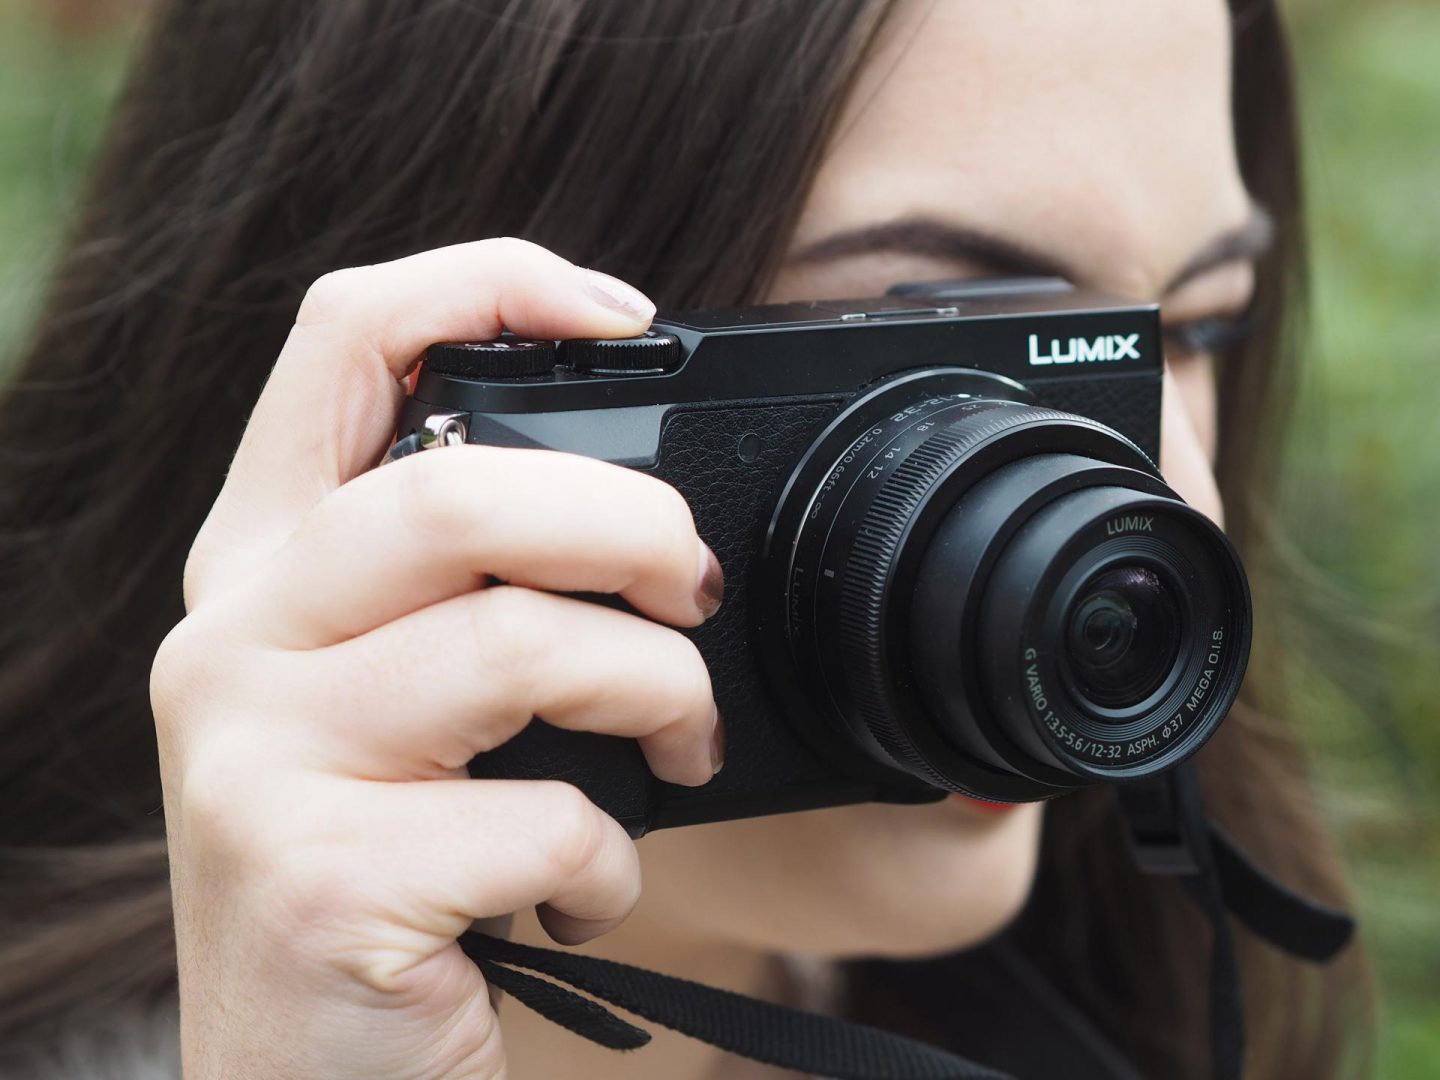 panasonic-lumix-gx80-camera-review-rachel-nicole-uk-blogger-1